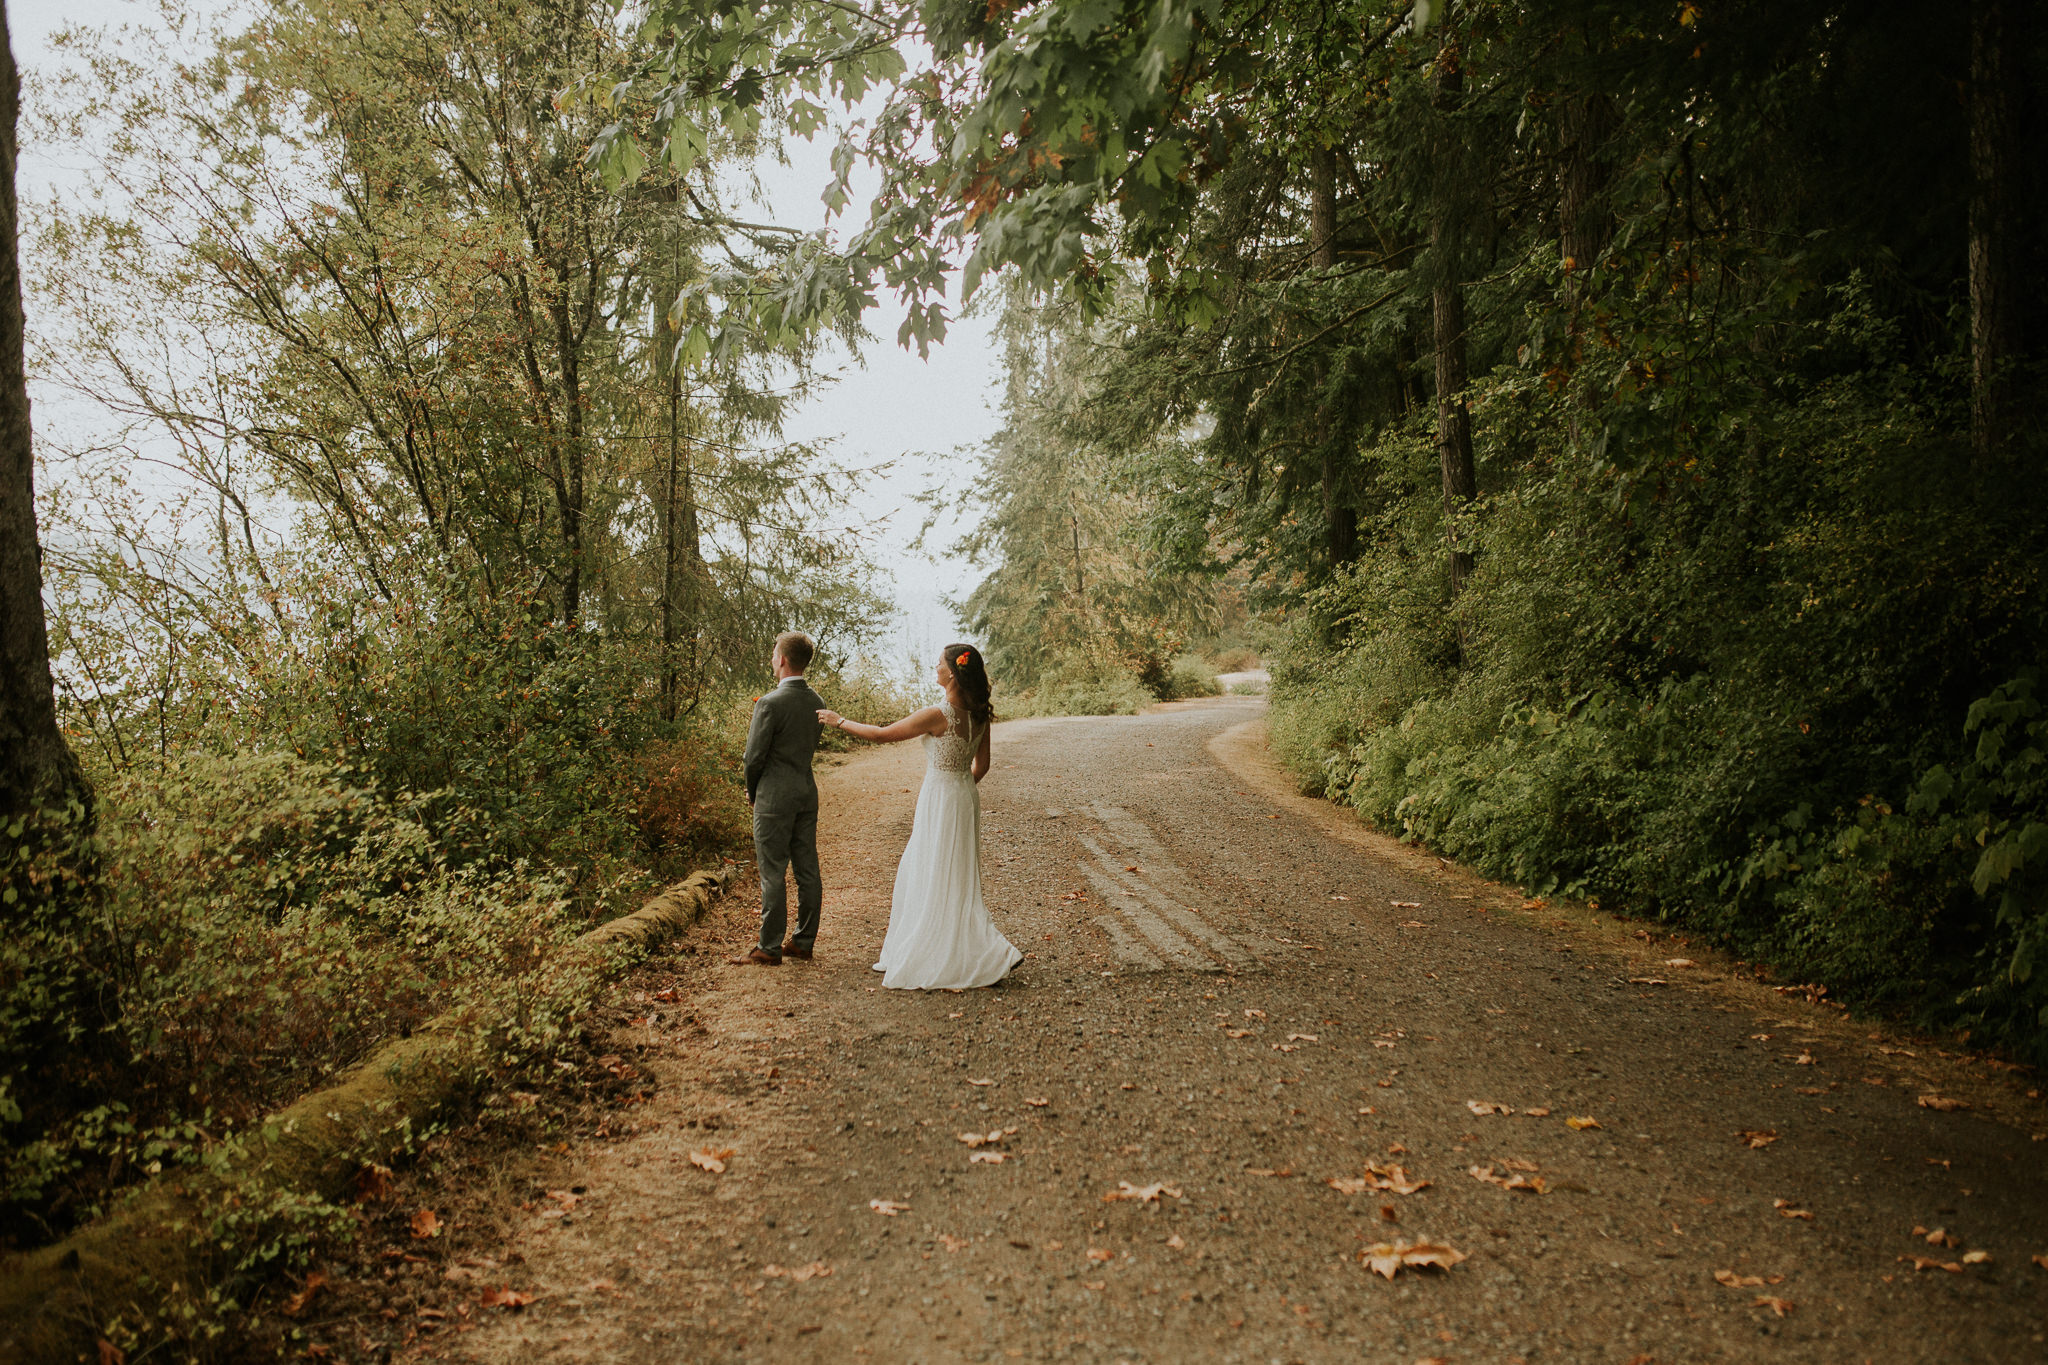 Port-Orchard-Manchester-Park-elopement-Bride-And-Groom-7.jpg